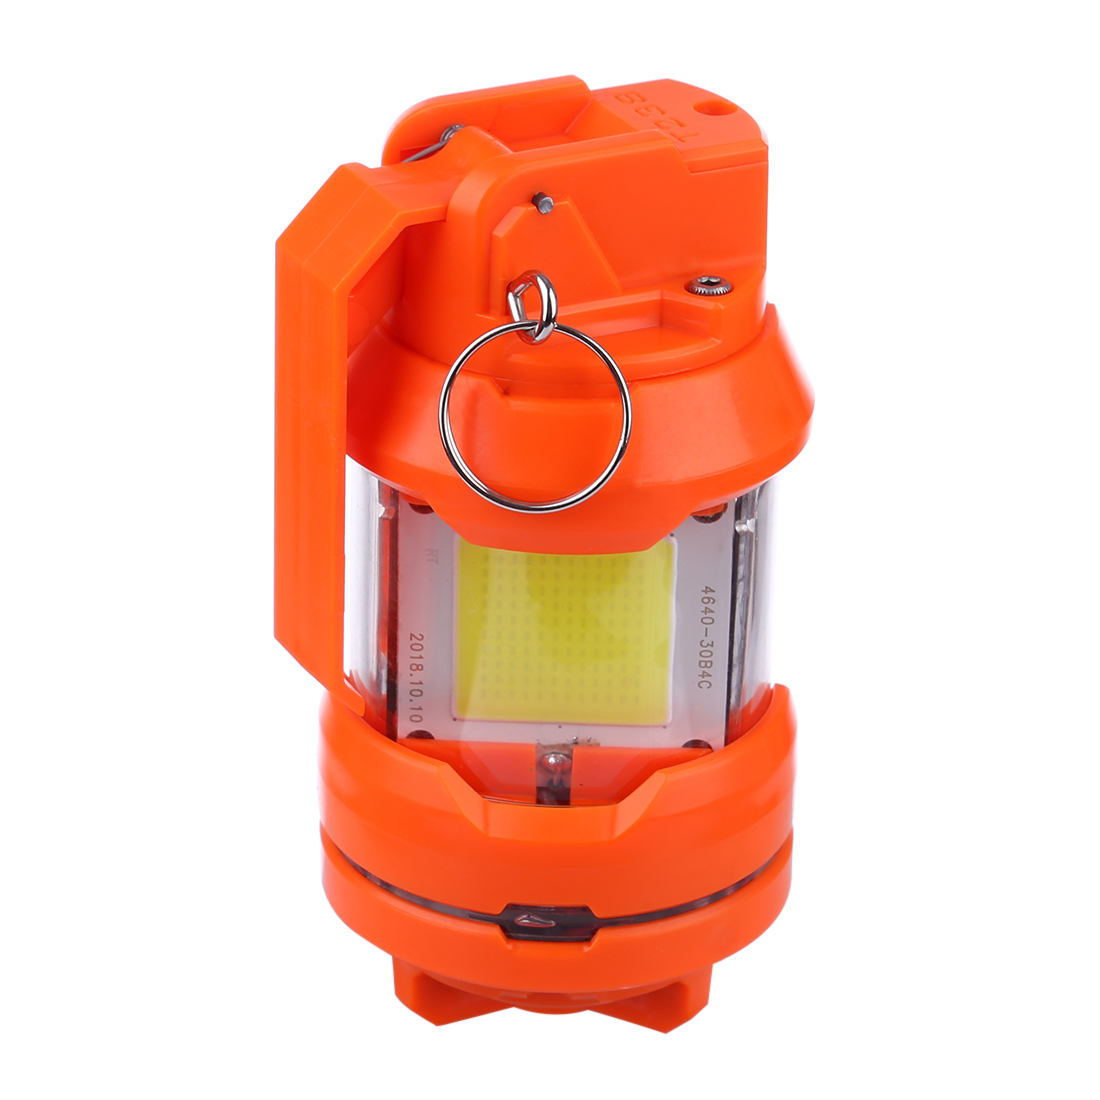 Flash Bomb T238 LED Frequency Bright Cool Stun for 11 1v Battery for Nerf Water Beads Blaster Night Fight Without Battery in Toy Guns from Toys Hobbies